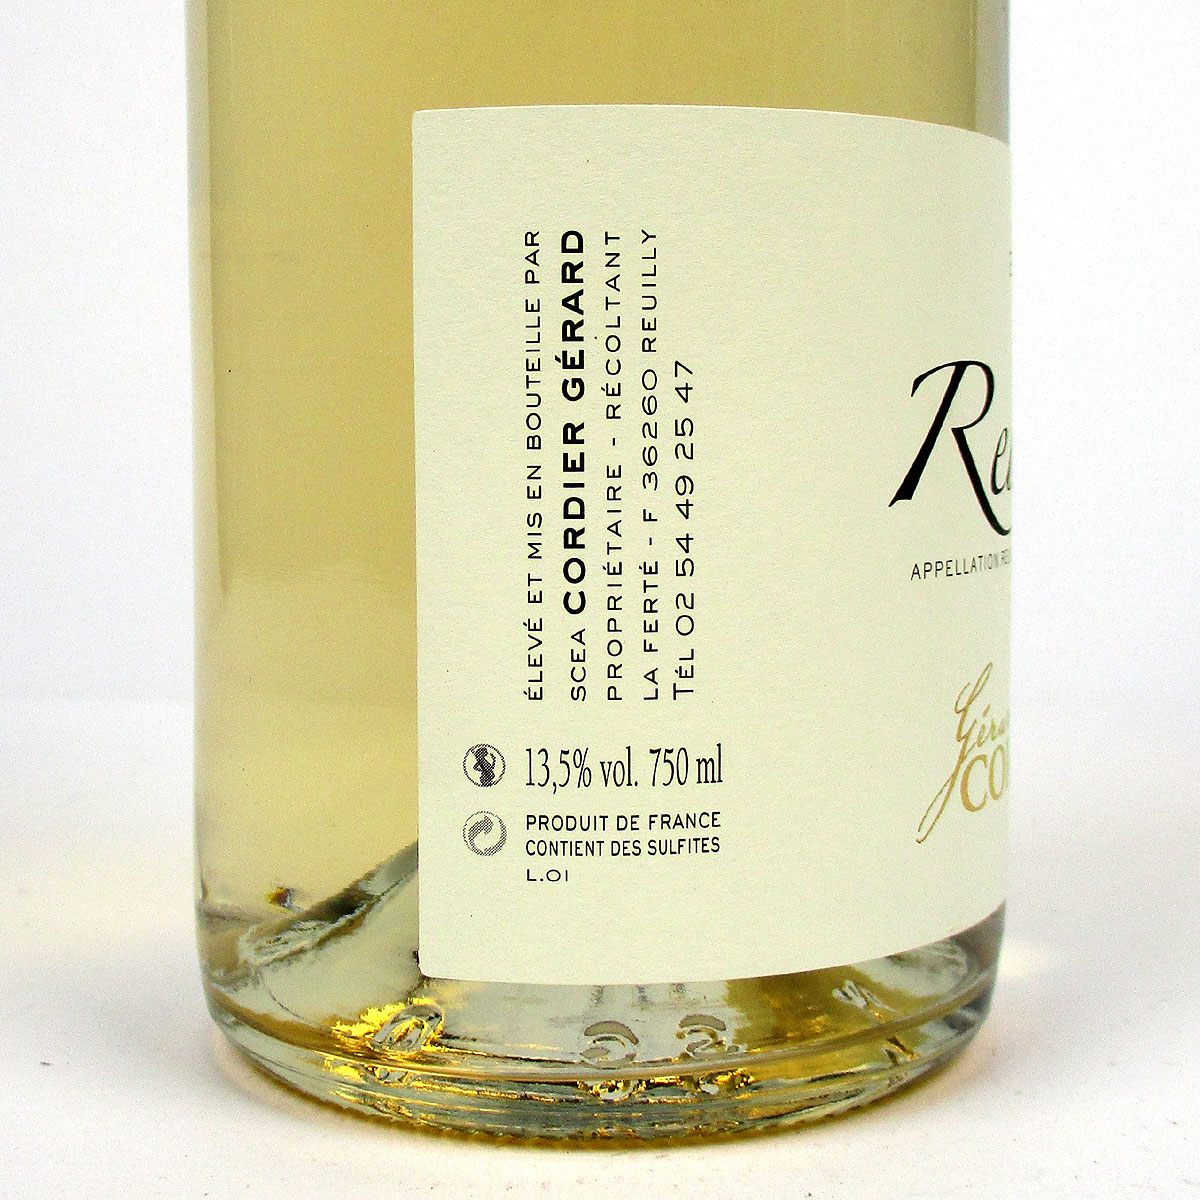 Reuilly: Gerard Cordier Pinot Gris 2020 - Bottle Side Label